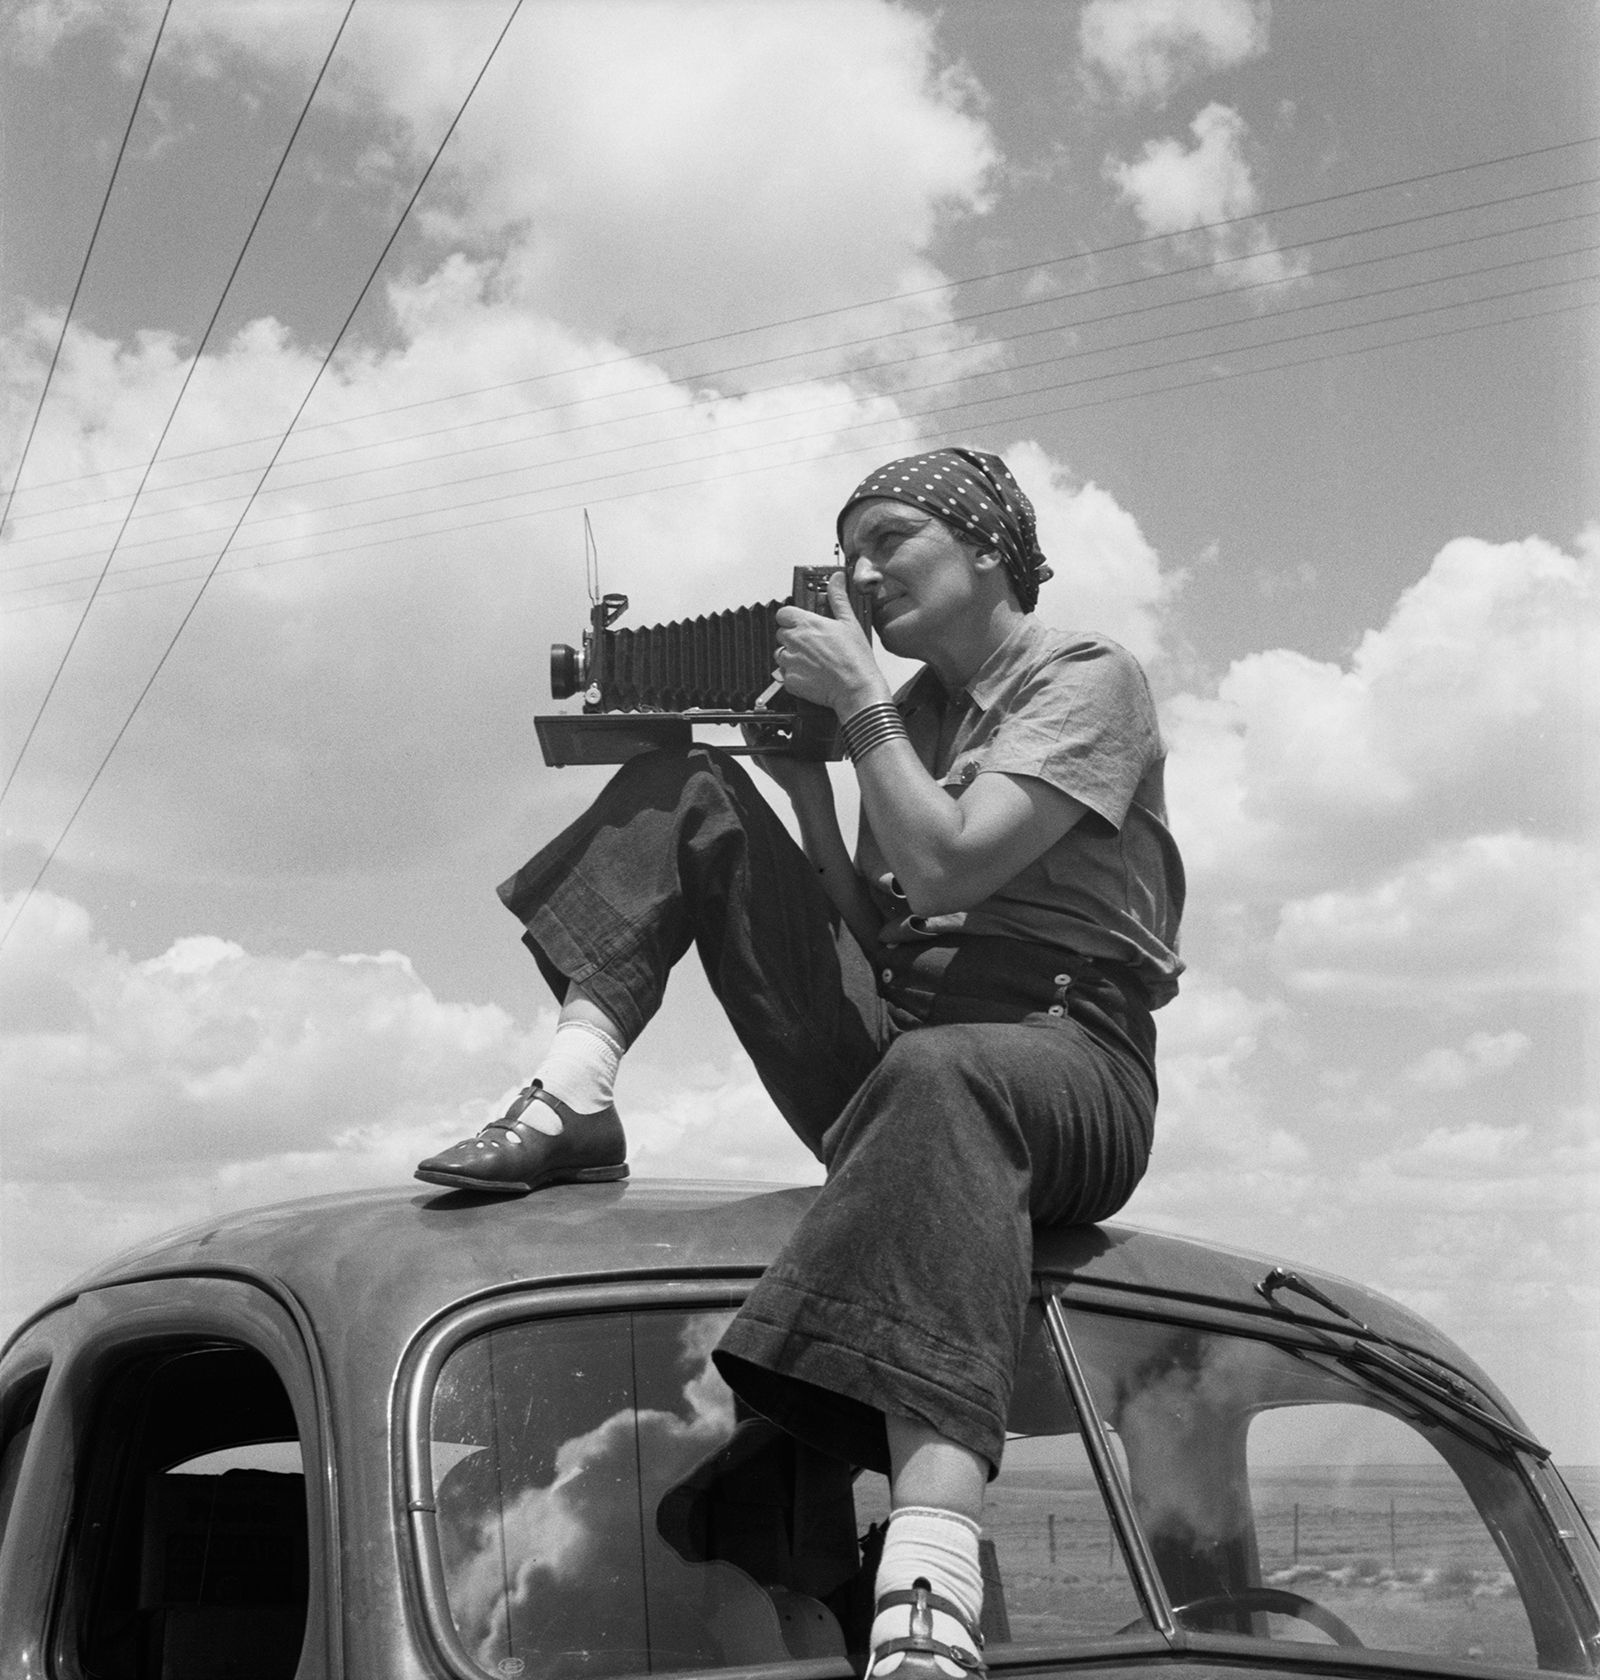 What Made Dorothea Lange an Iconic Photographer and Who was she?